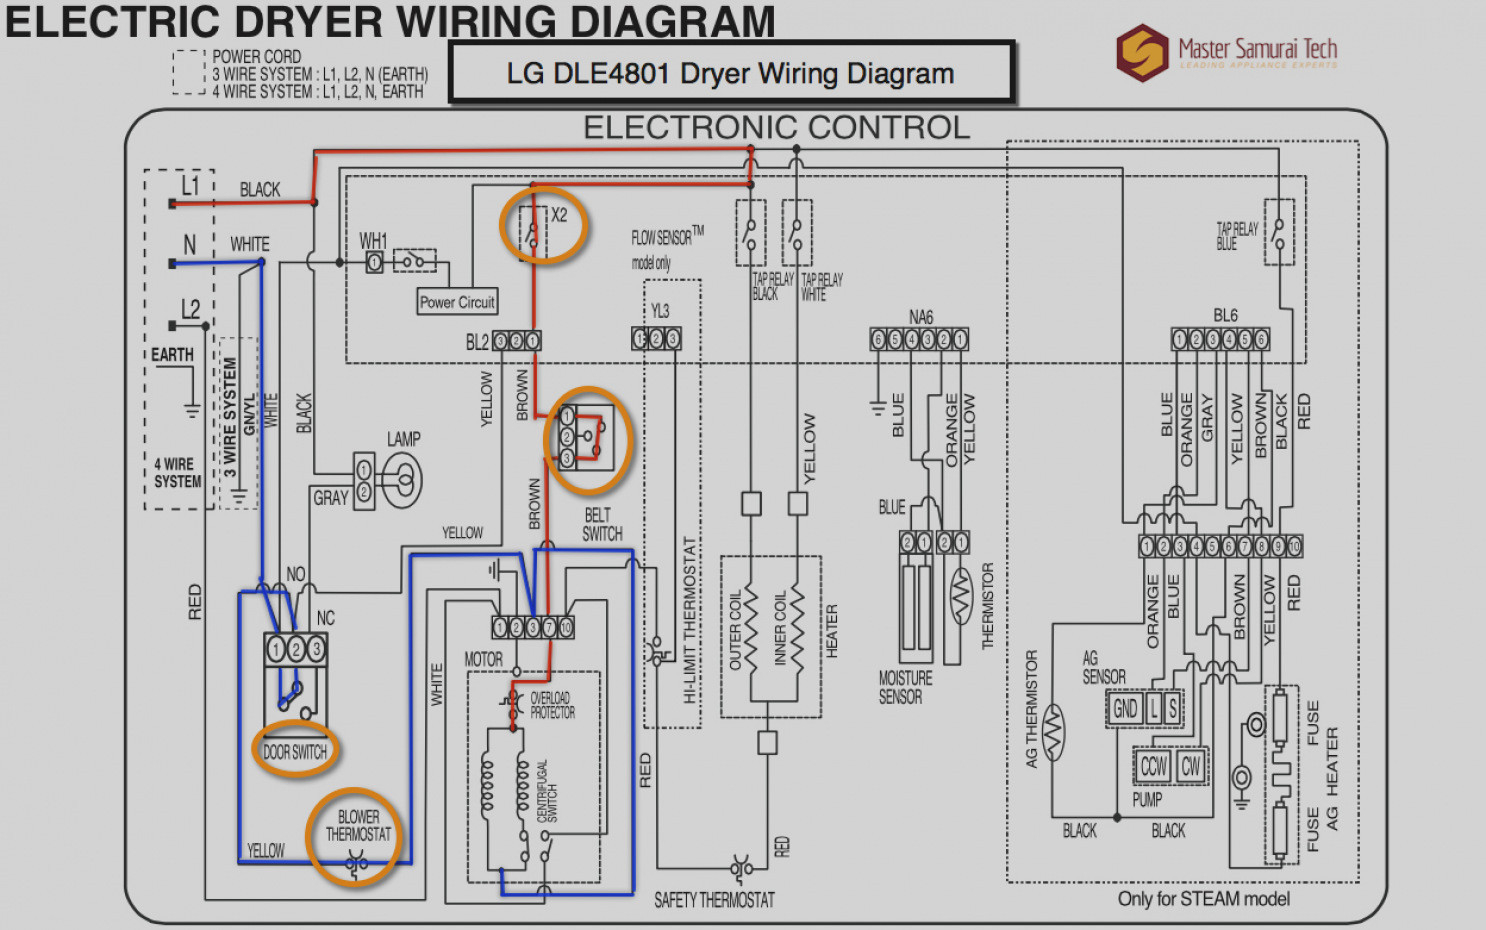 whirlpool gas dryer wiring diagram Download-Whirlpool Dryer Electrical Schematic  Wiring Data Outstanding Diagrams For. DOWNLOAD. Wiring Diagram ...